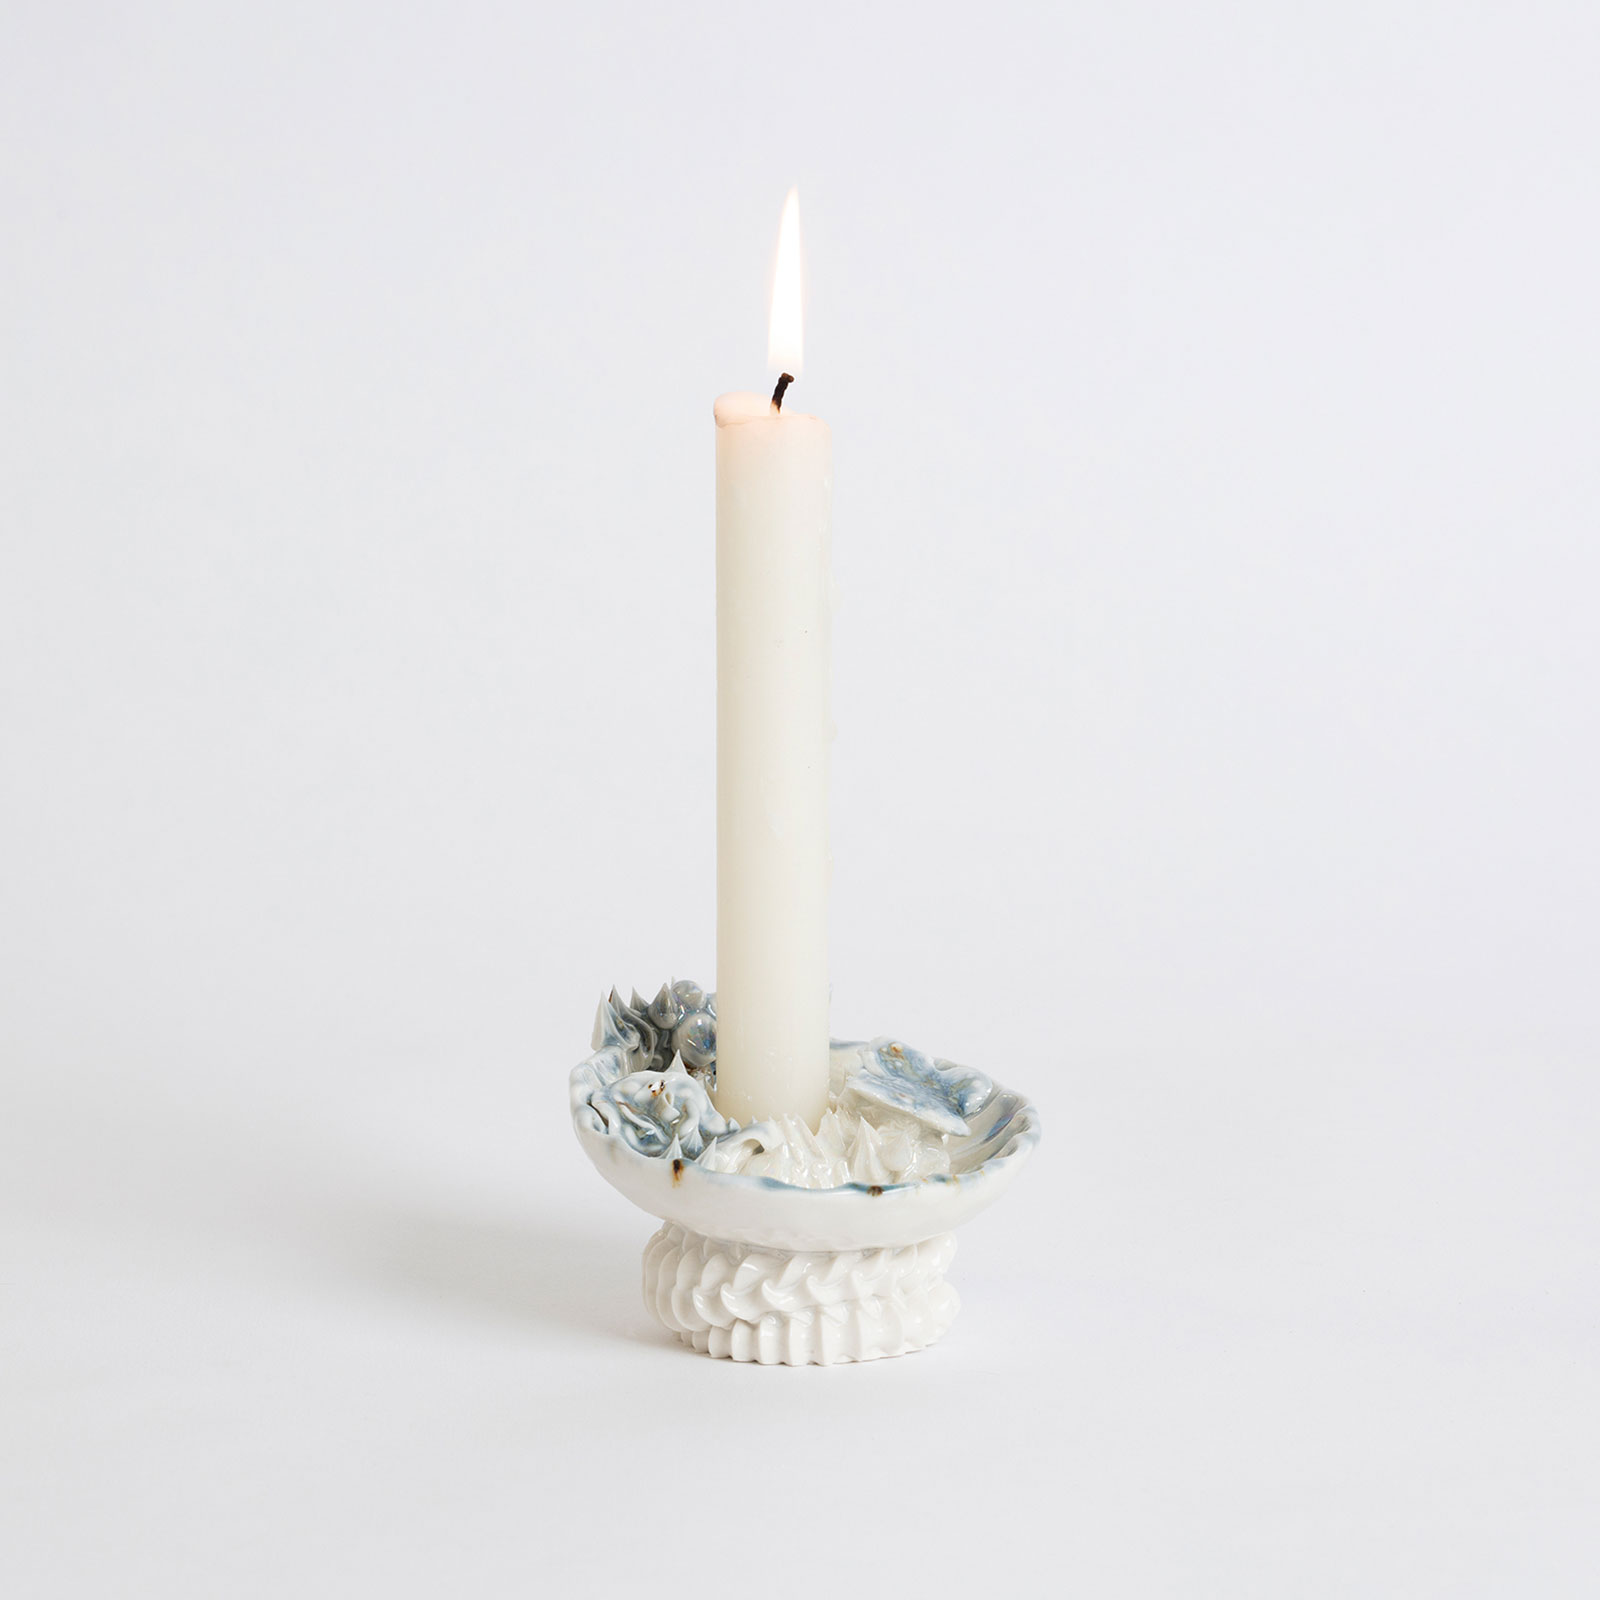 Artificial Kingdom Candleholder In Porcelain With Glaze And Blue Lustre By Ebony Russell Hero